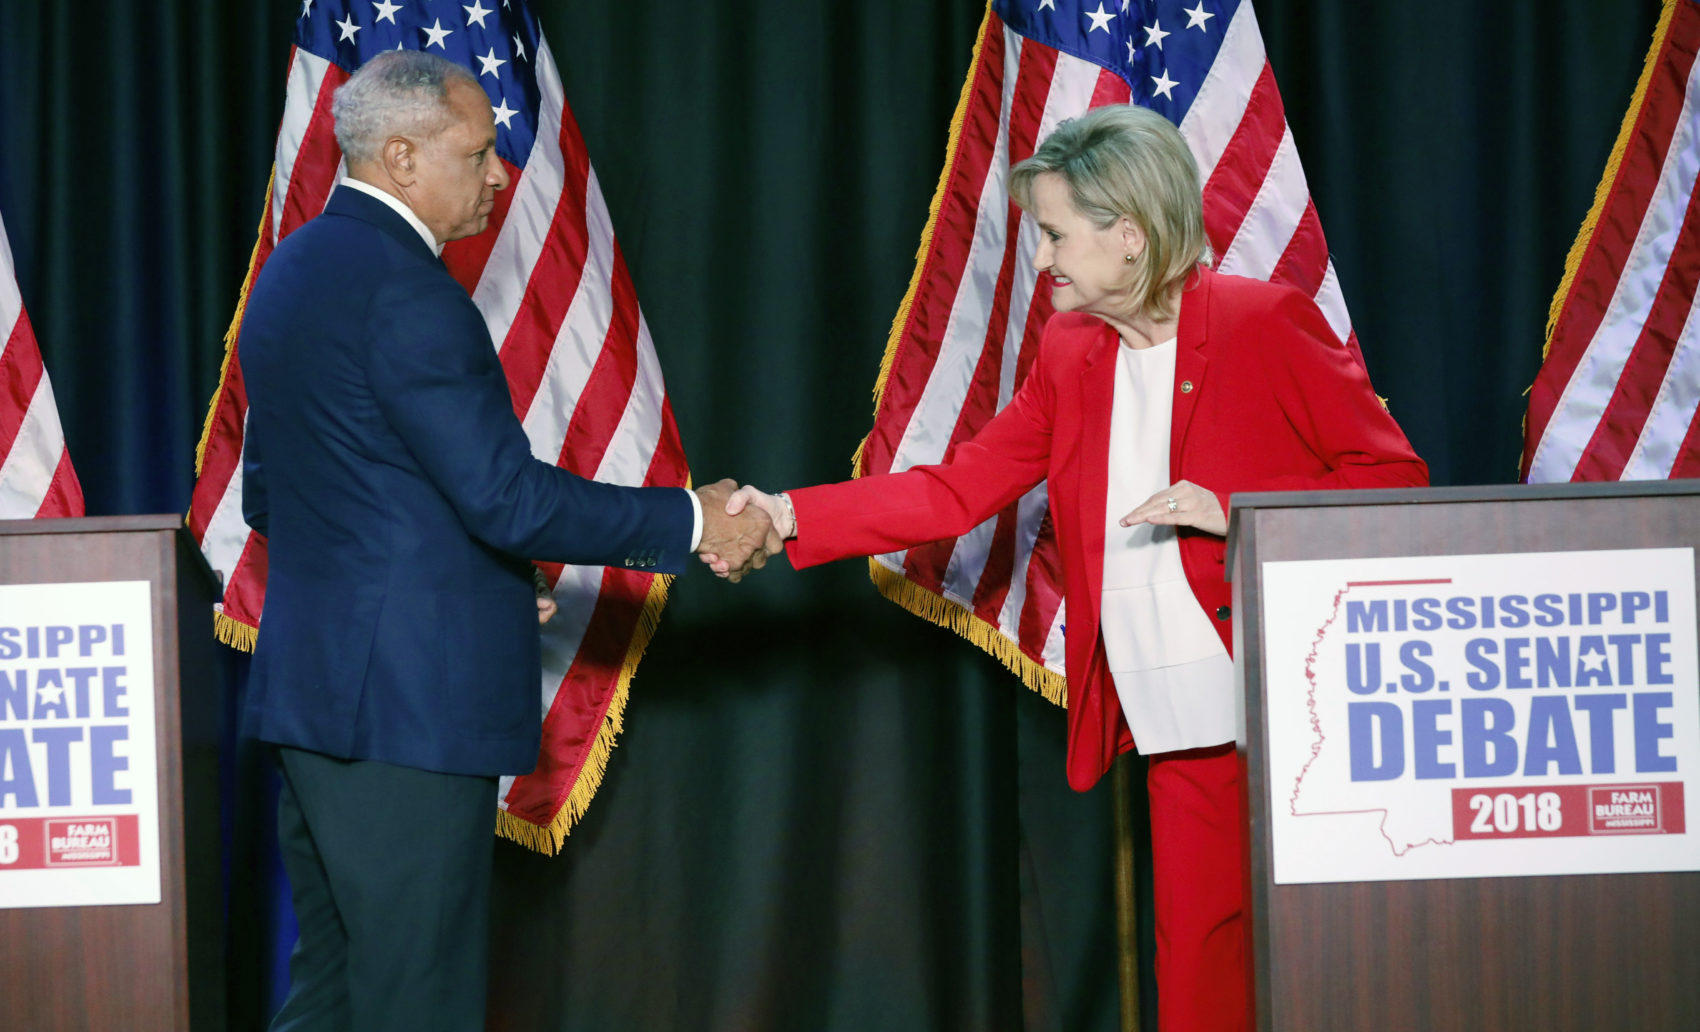 MLB Asks Cindy Hyde-Smith Campaign To Return $5,000 Donation